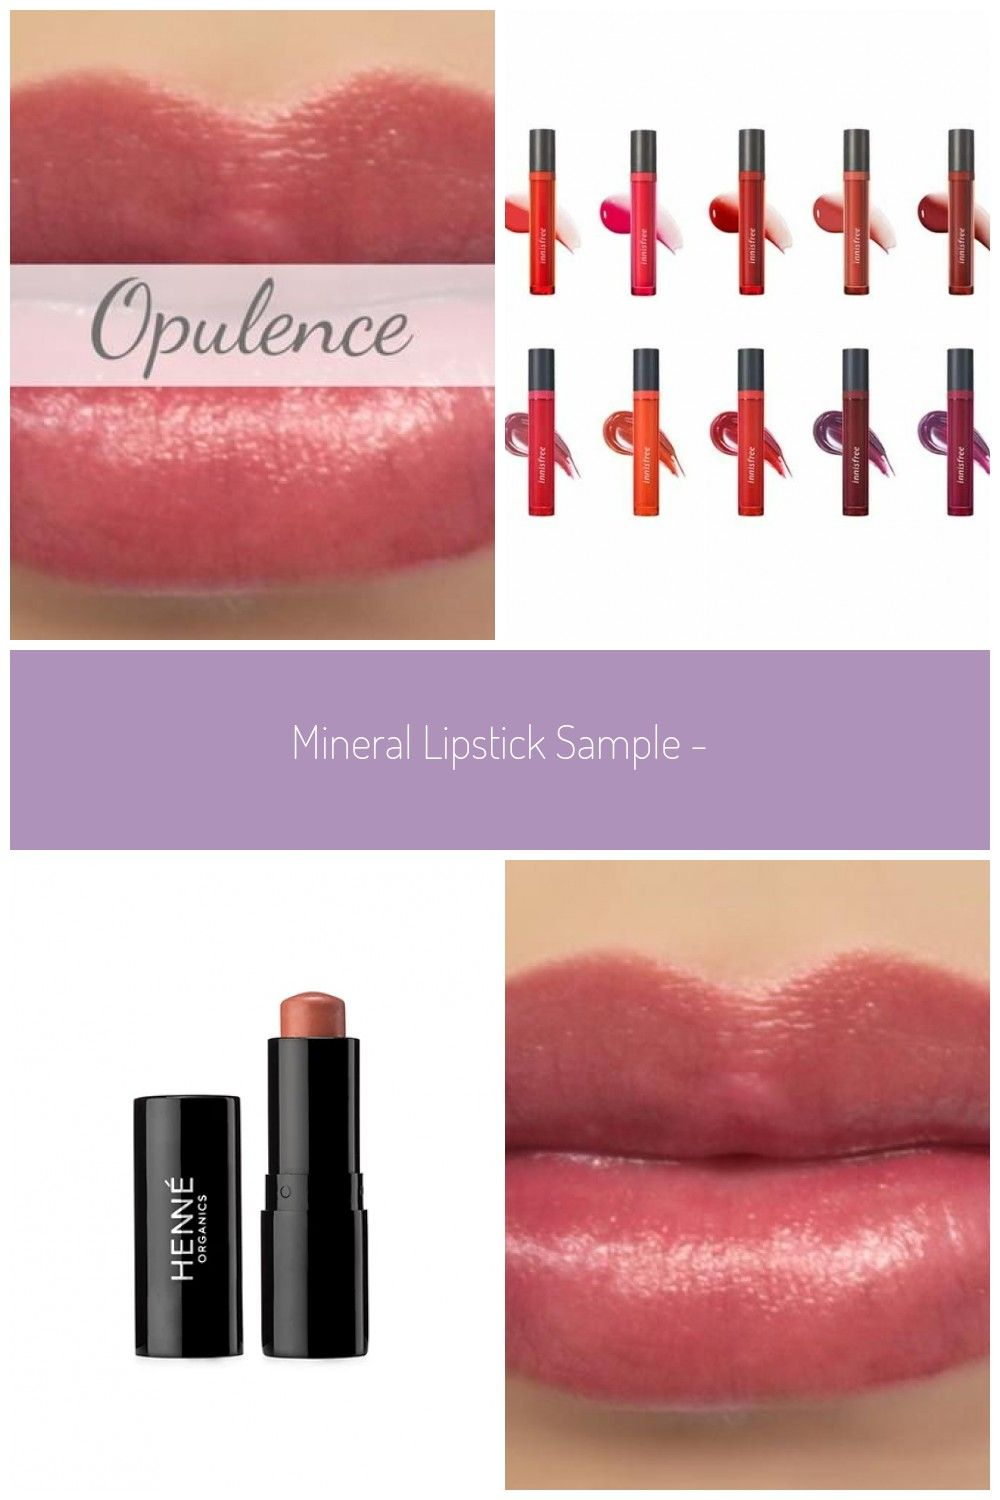 Mineral Lipstick Sample Quot Opulence Quot Sheer Berry Pink Lip